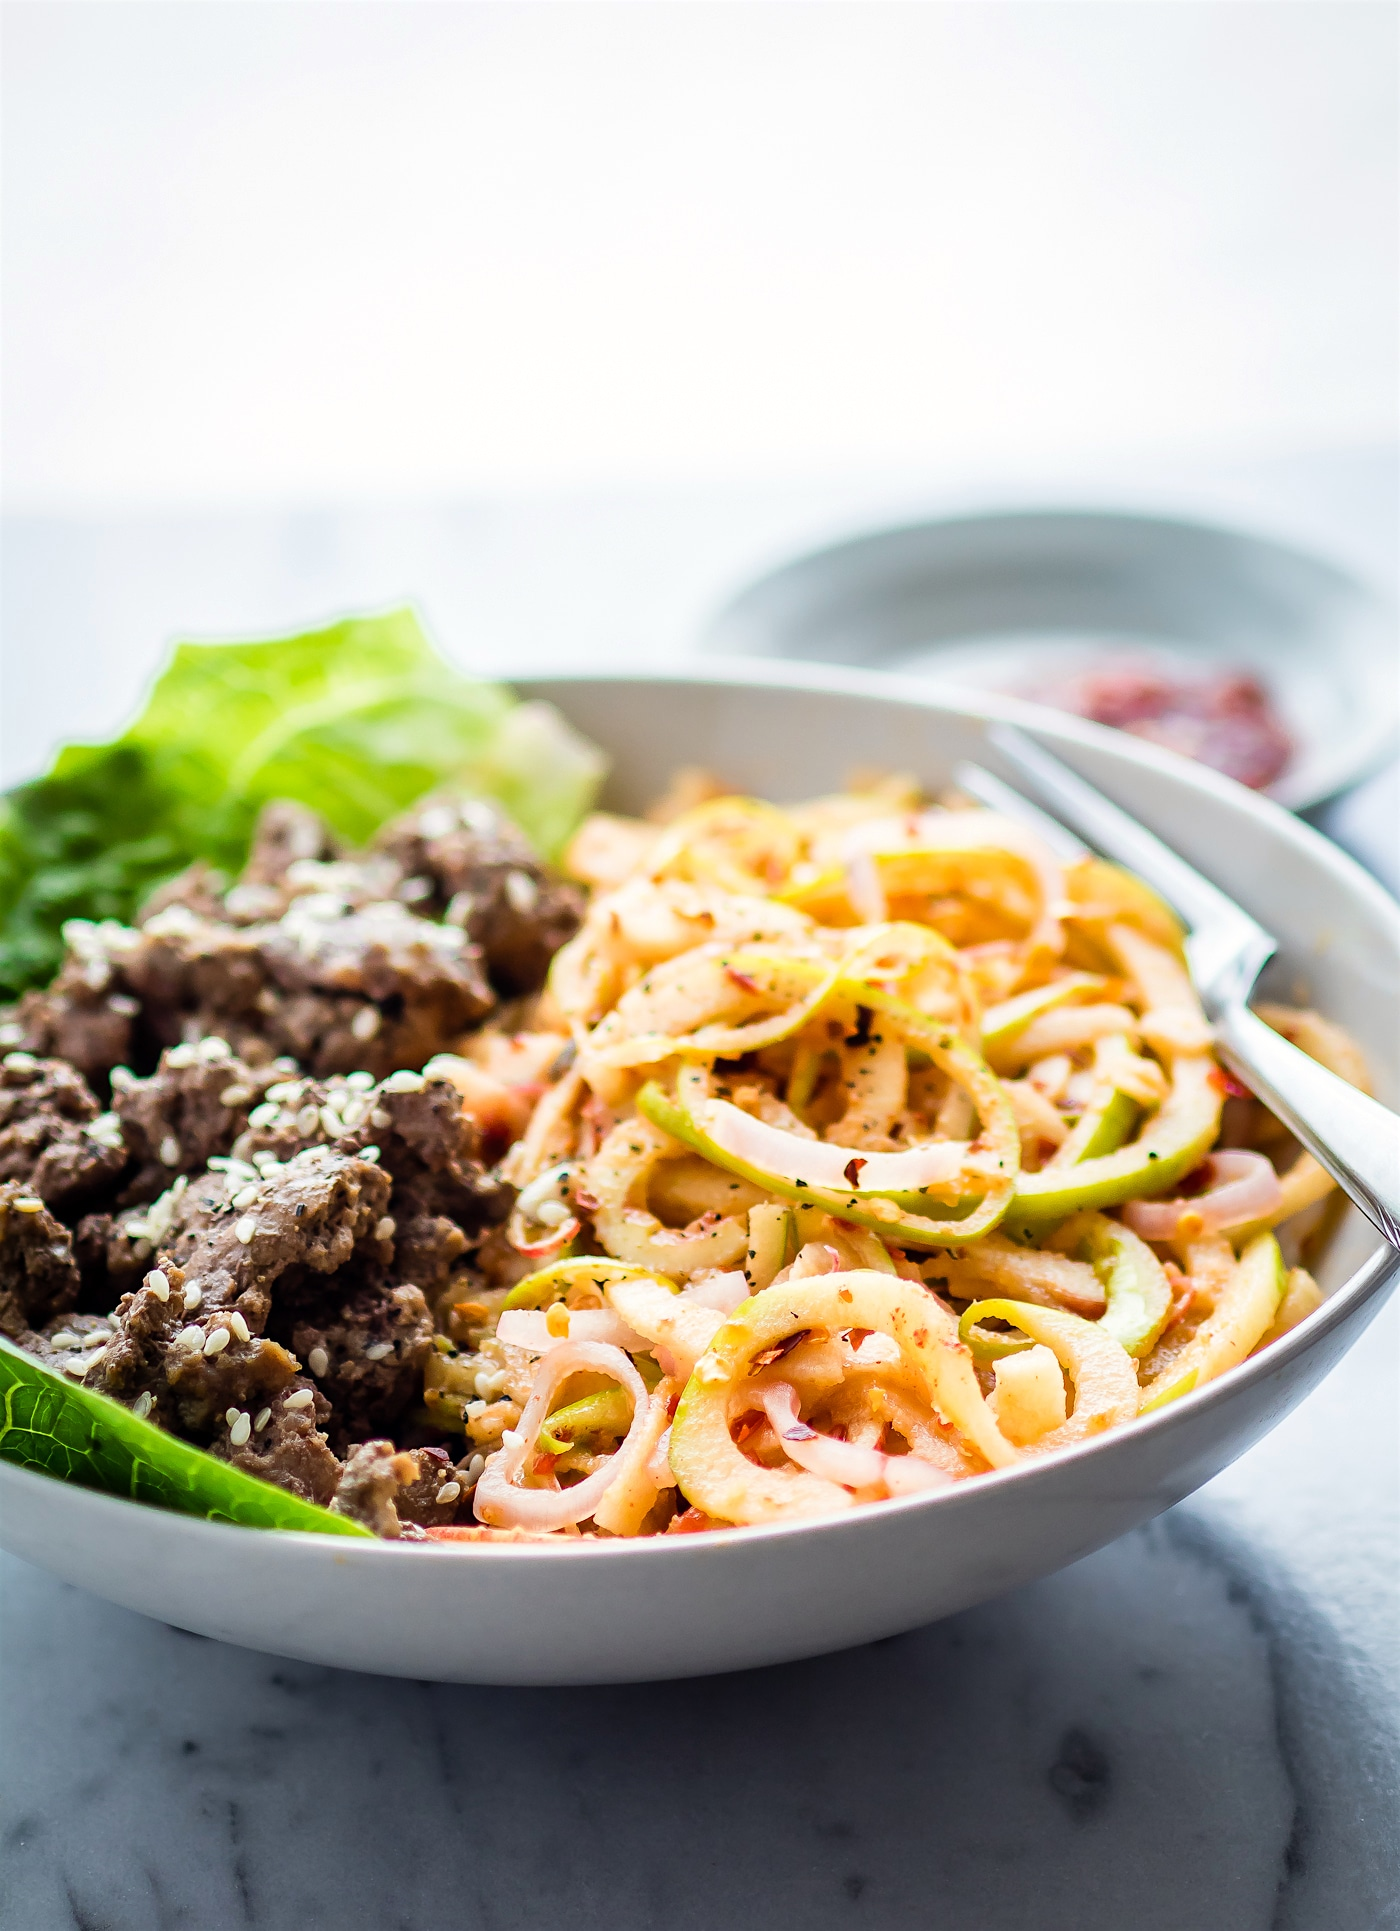 "Spiralized Apple ""kimchi"" salad with Garlic Beef! This Asian inspired spiralized apple salad makes a quick and healthy kimchi substitute. Red and Green Apple noodles combined in a spicy dressing with garlic beef. An easy Paleo power bowl meal ready in 30 minutes!"